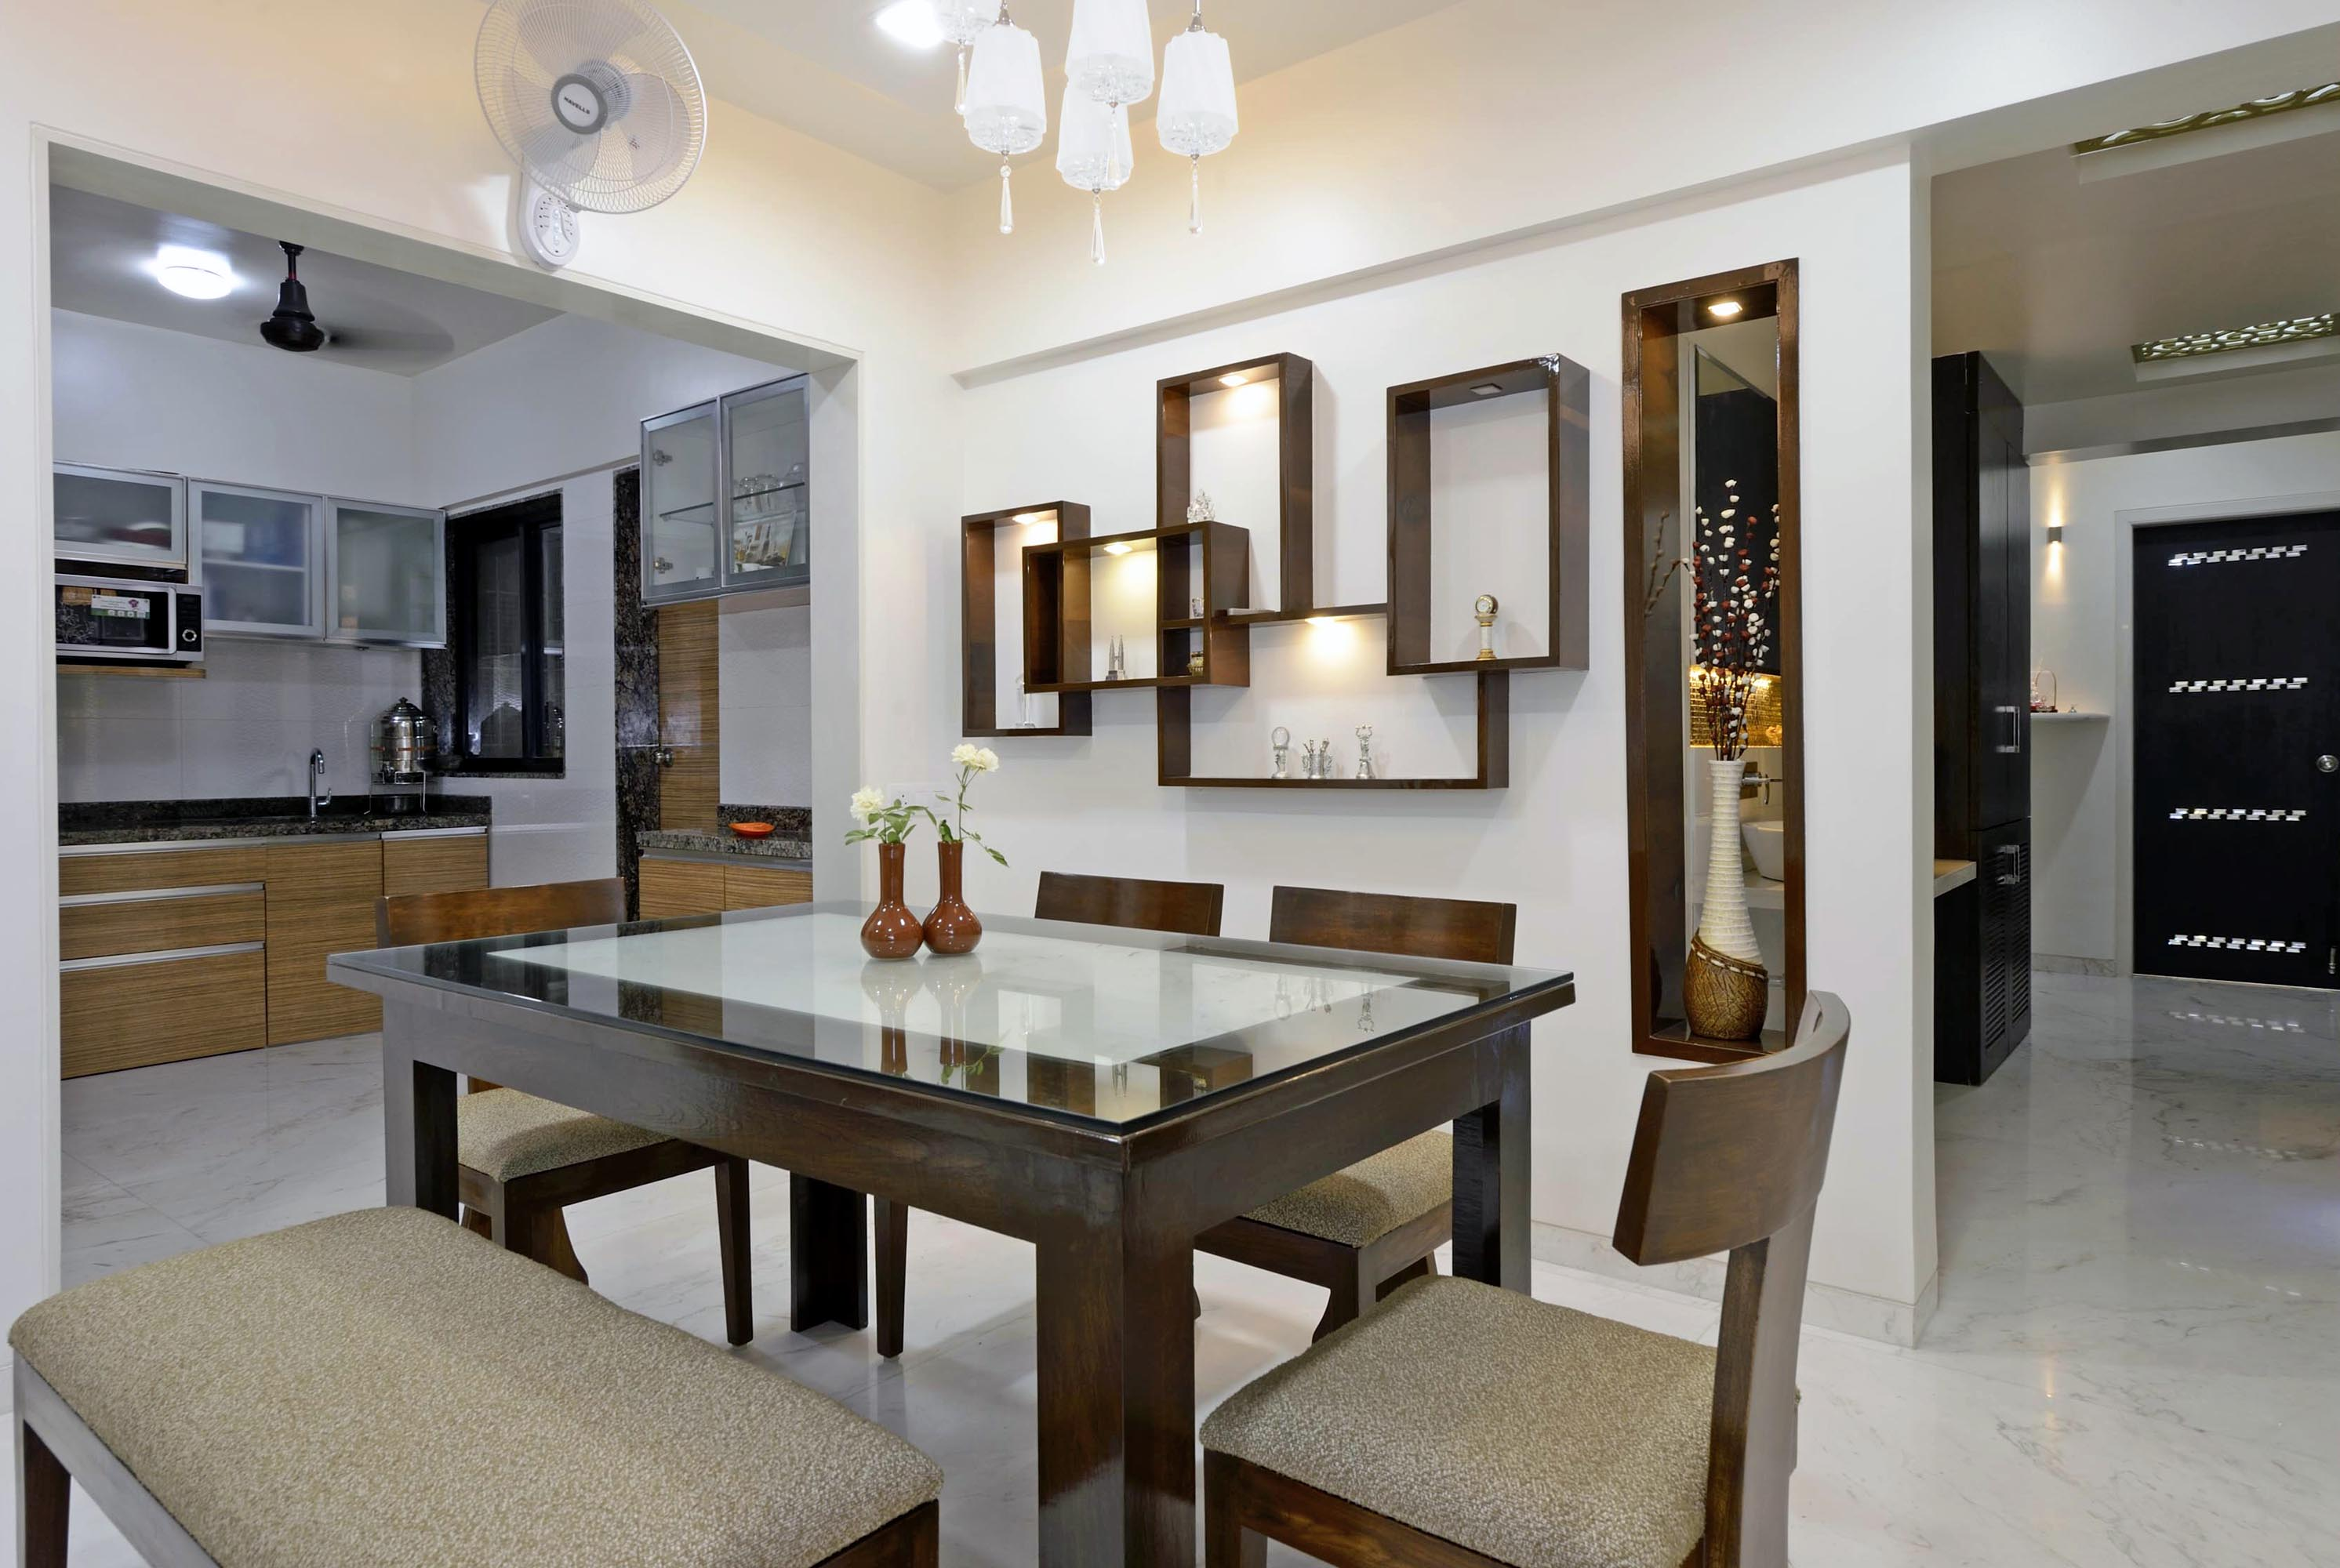 Concepts Interior Designs Interior Designer in Pune